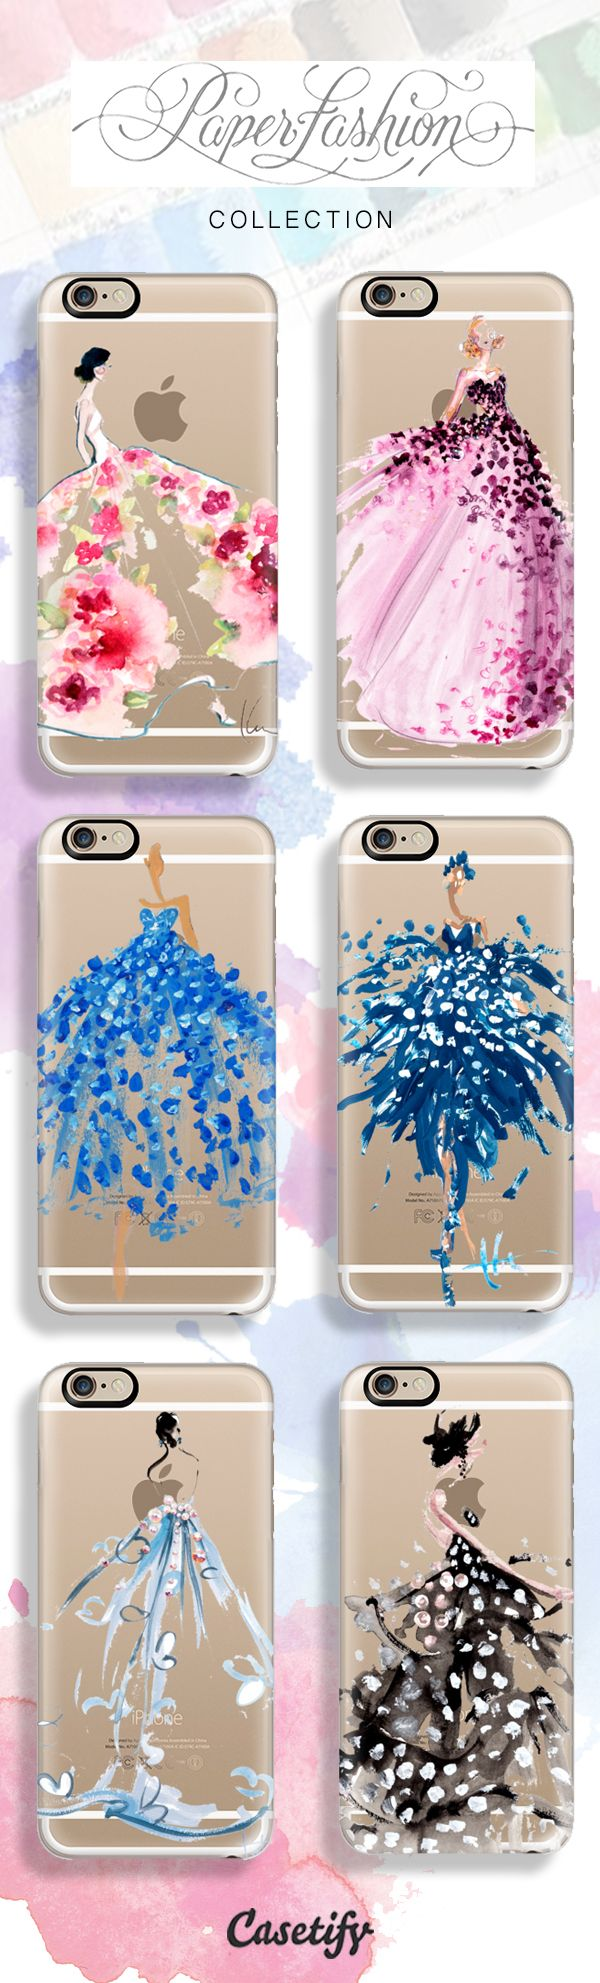 True Beauty. Shop @paperfashion x @casetify phone case collection here: https://www.casetify.com/paperfashion#/